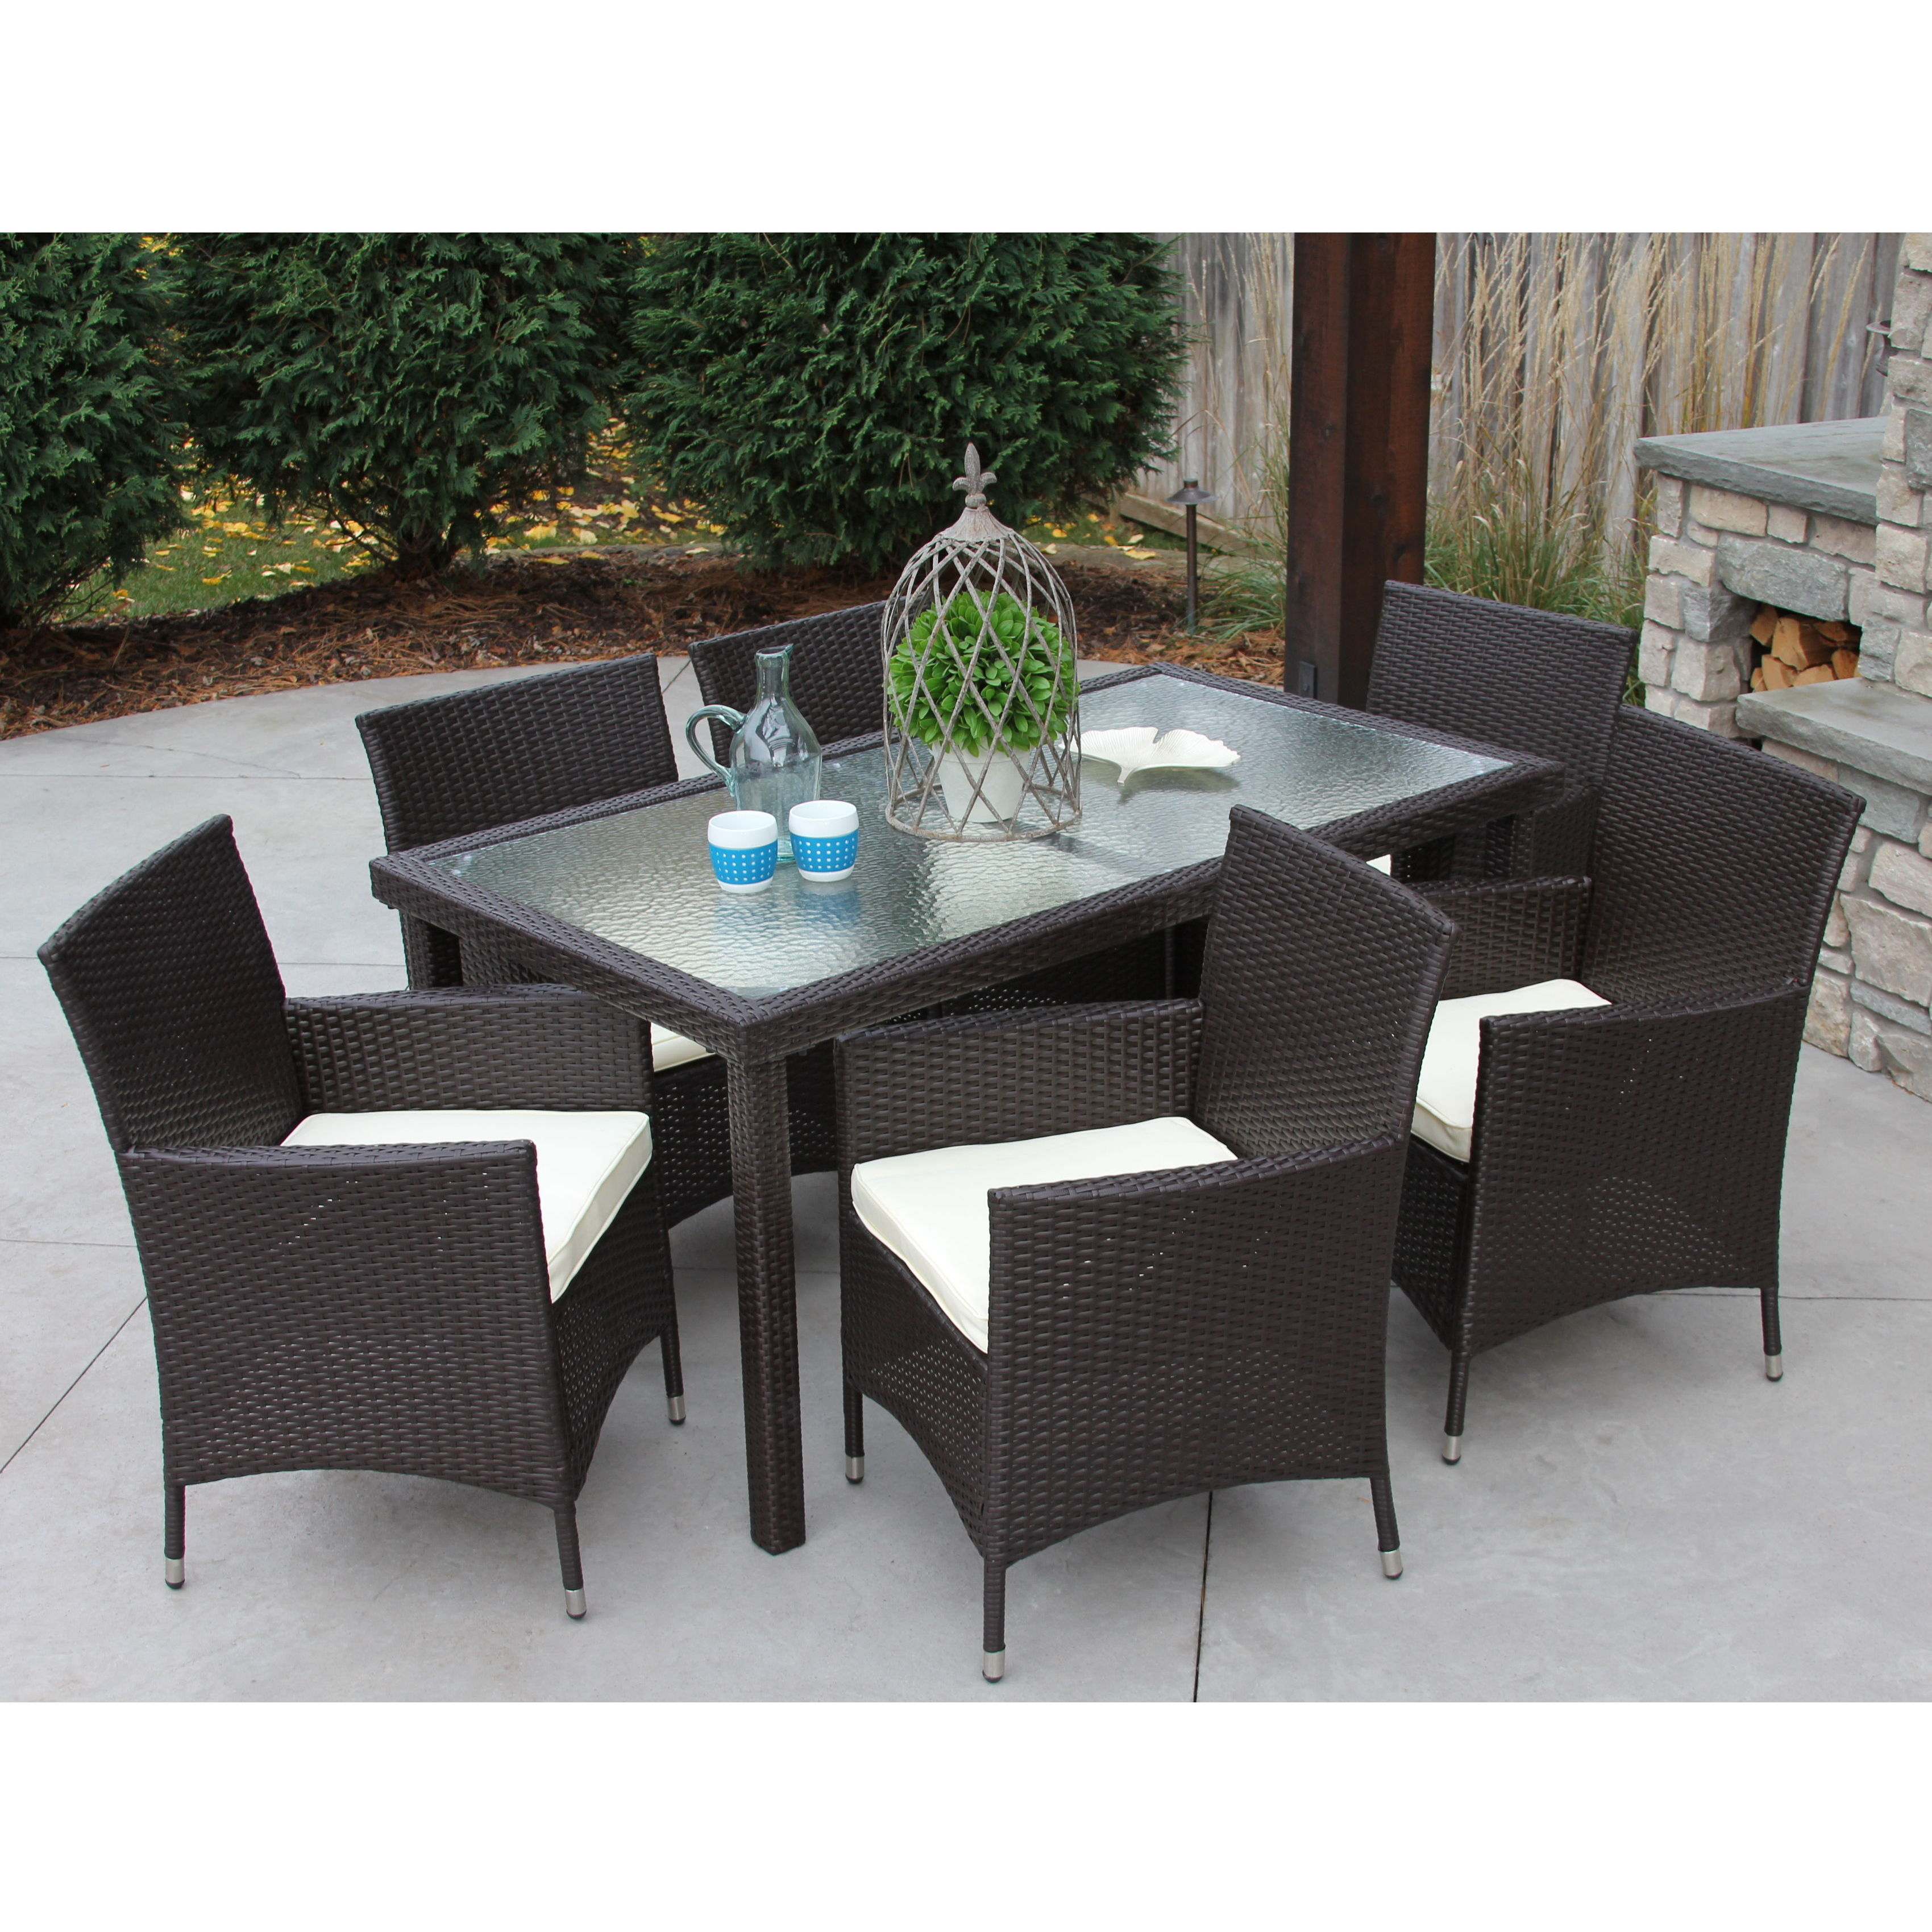 Shop Discontinued All Weather Wicker Glass Outdoor Dining Table And